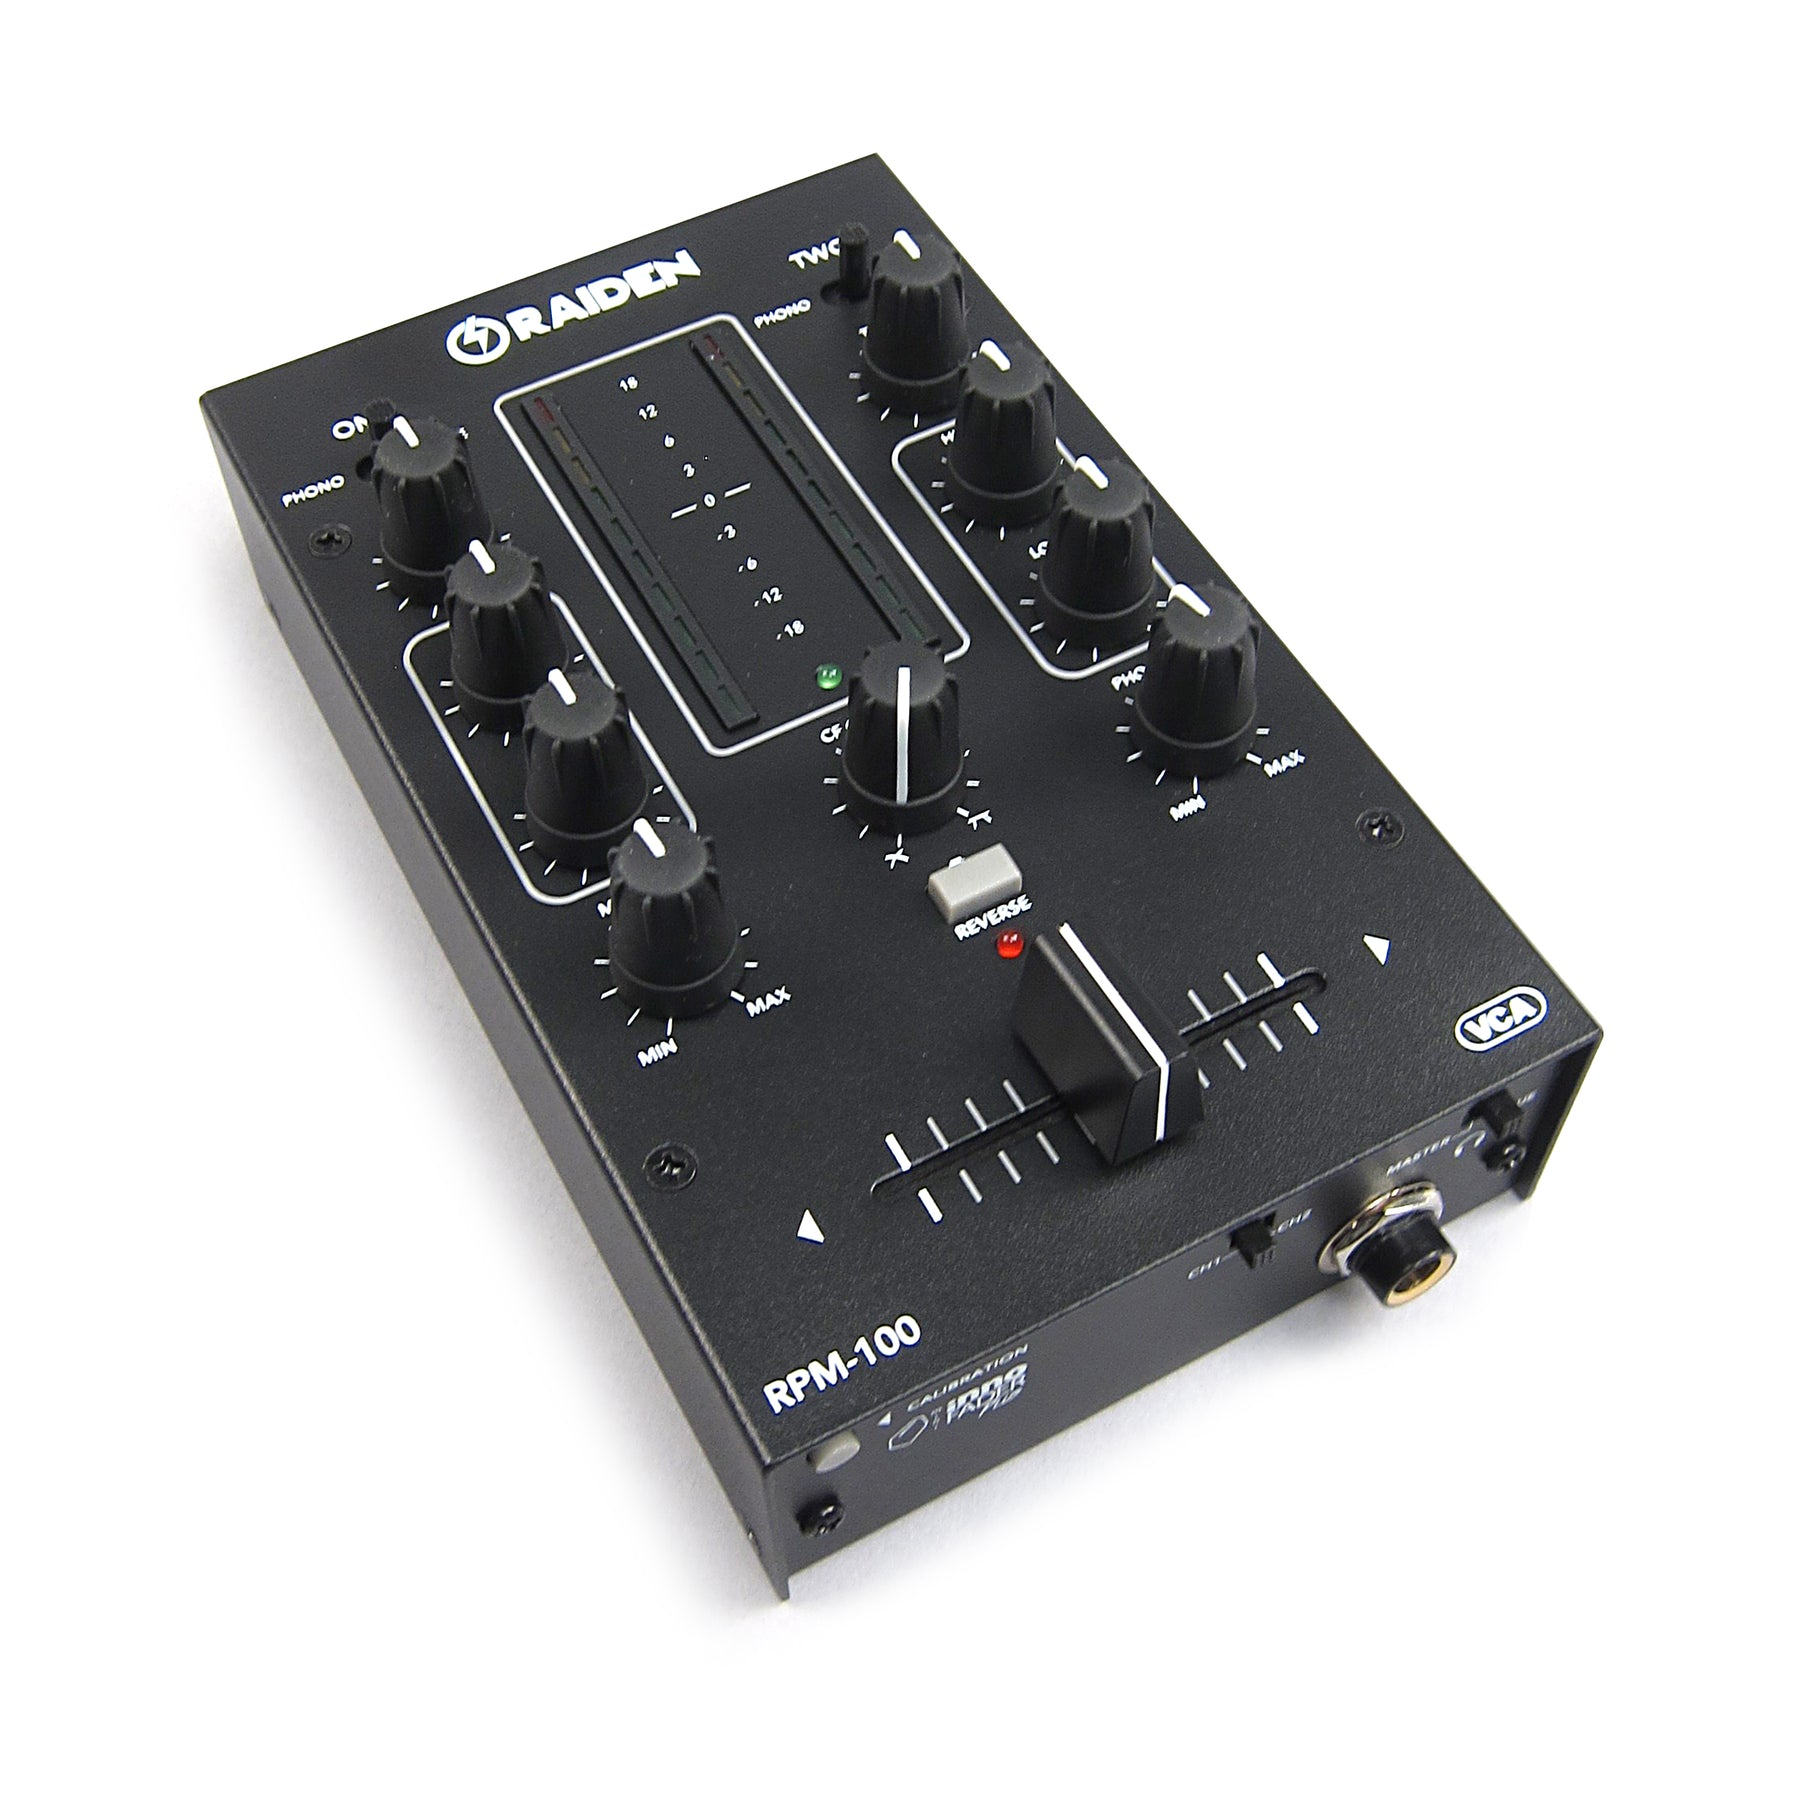 Raiden: RPM-100 Portable DJ Mixer – TurntableLab com